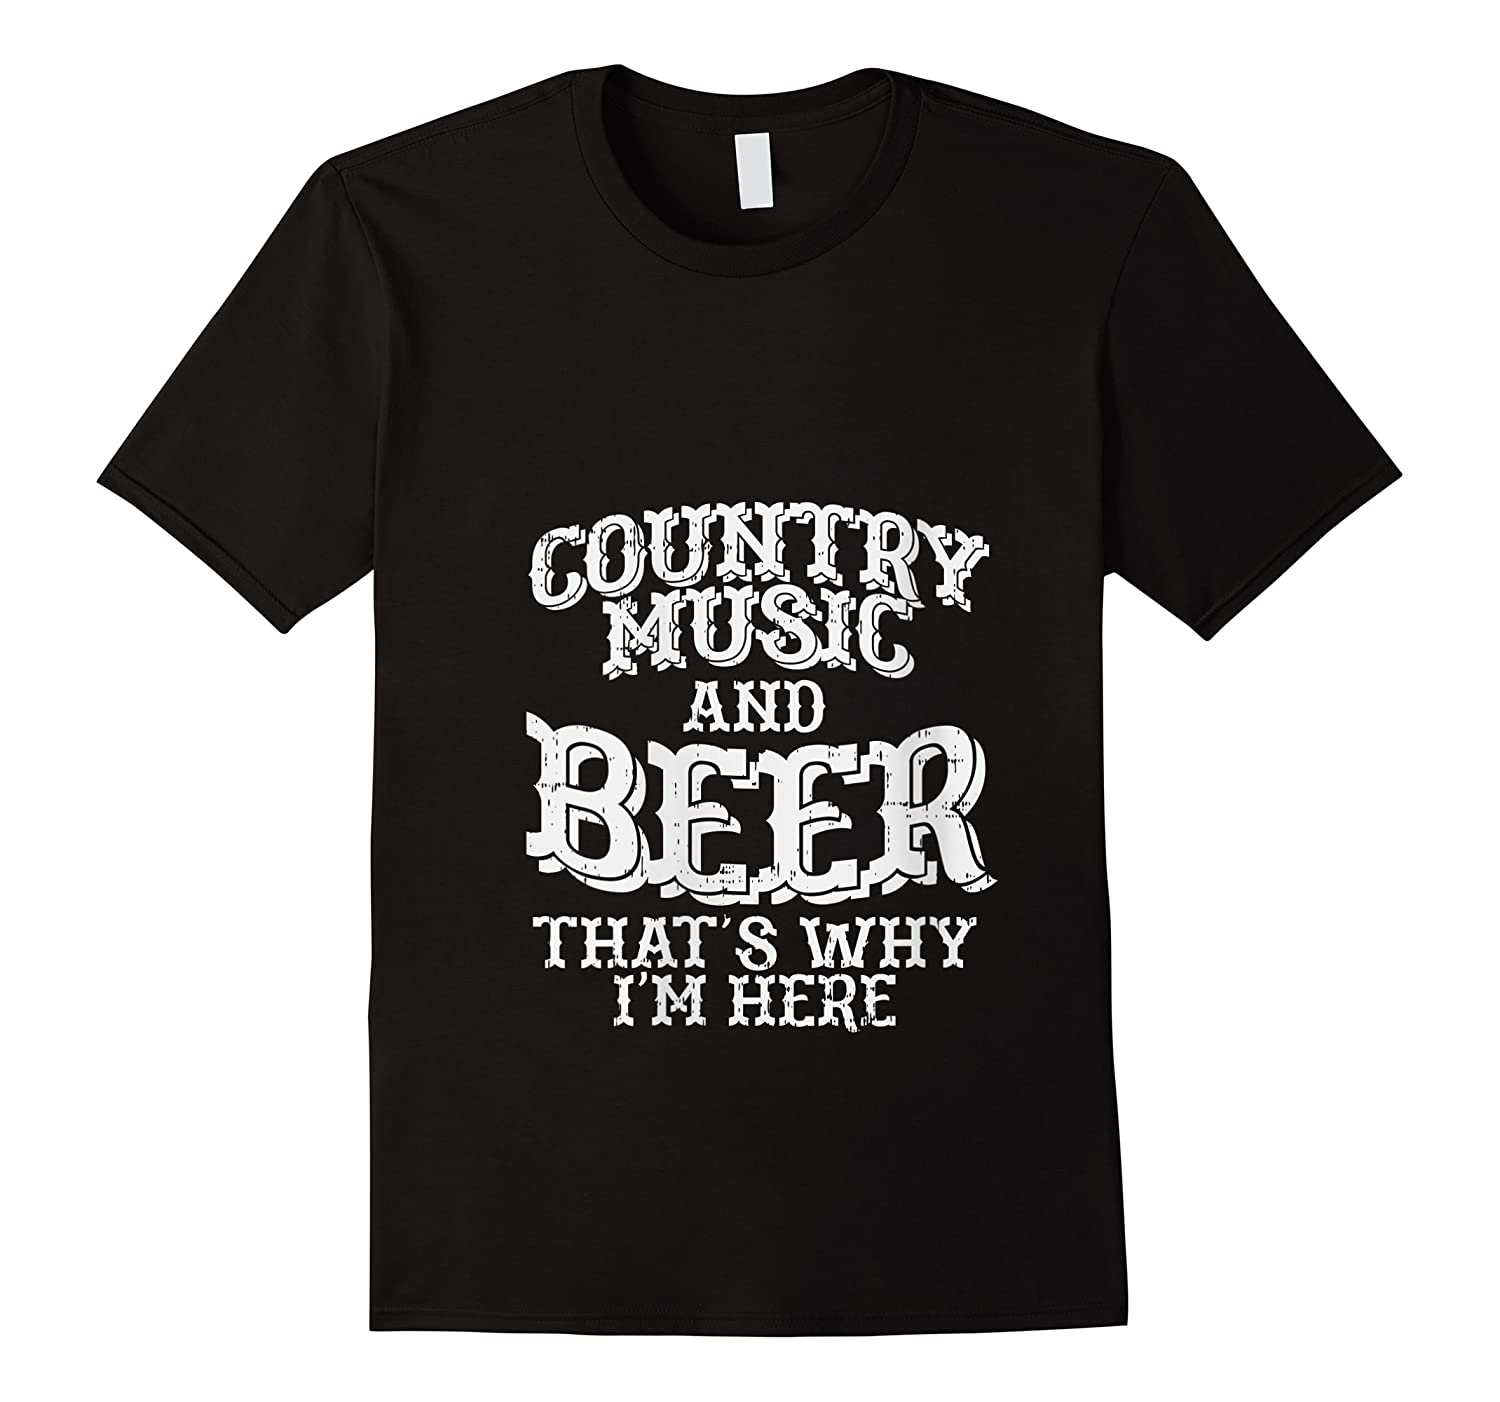 Country Music And Beer Thats Why Im Here Funny Vacation Gift T-shirt